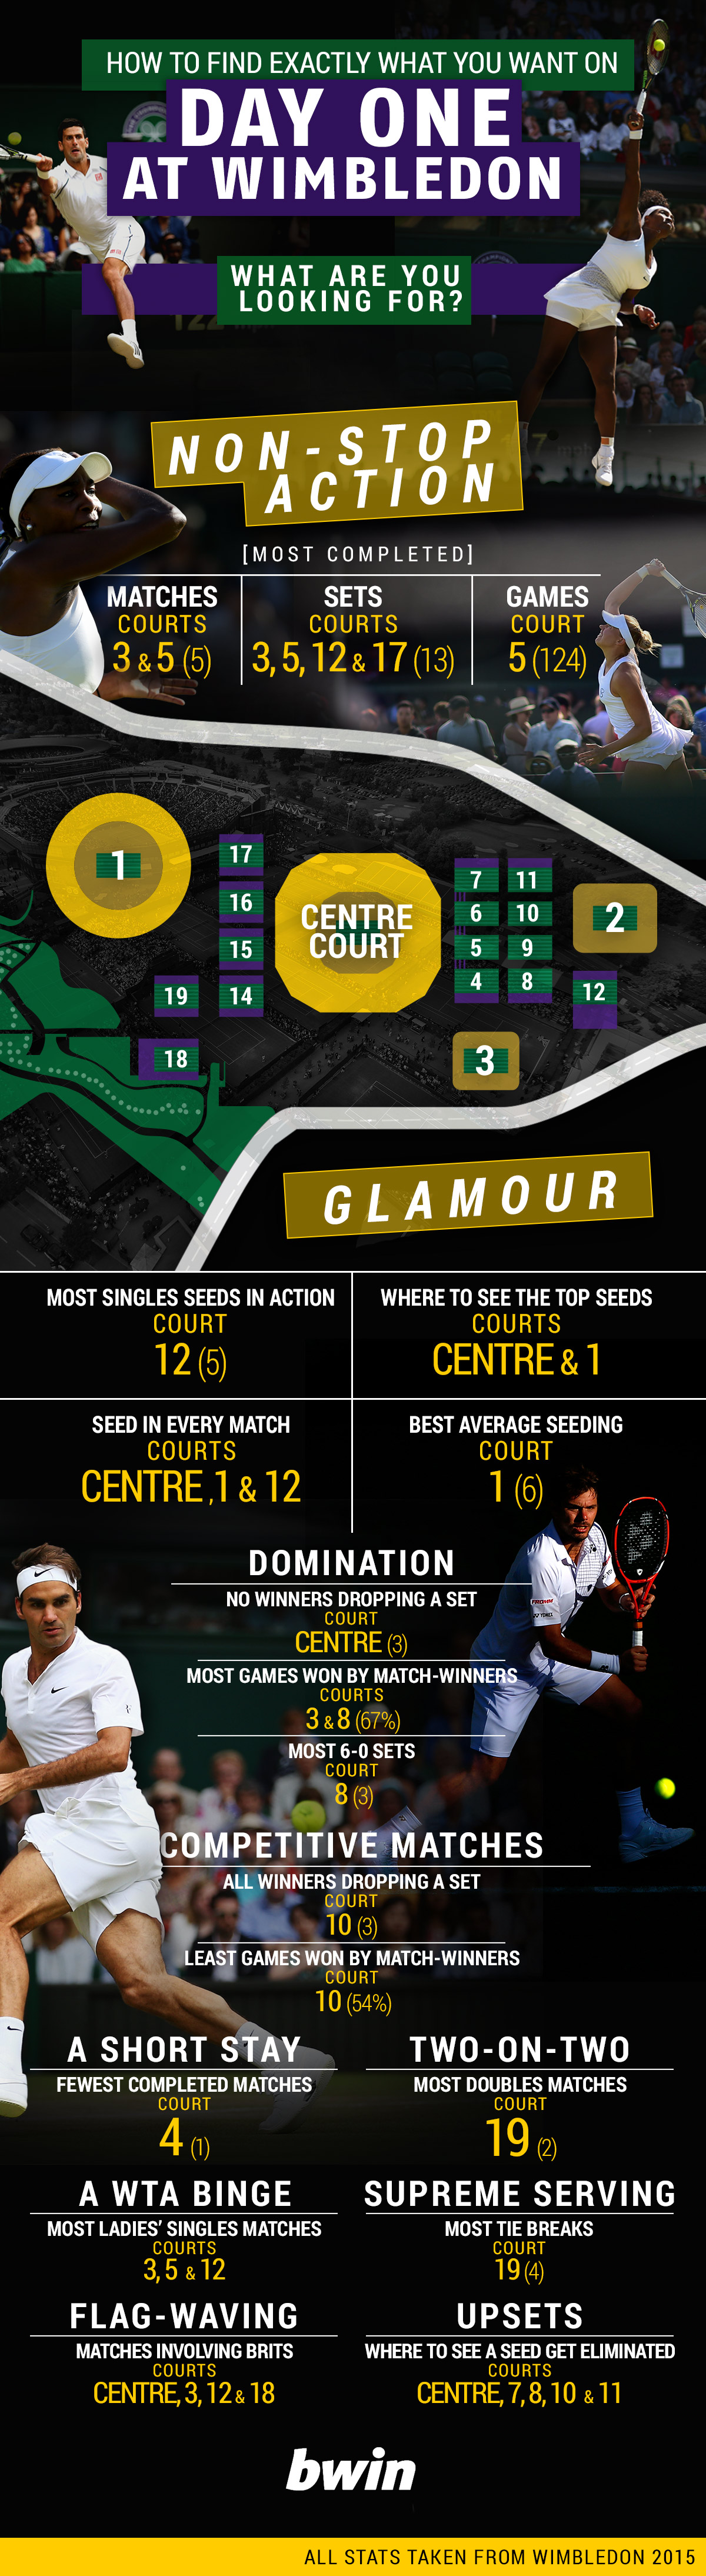 Which court should I visit at Wimbledon 2016